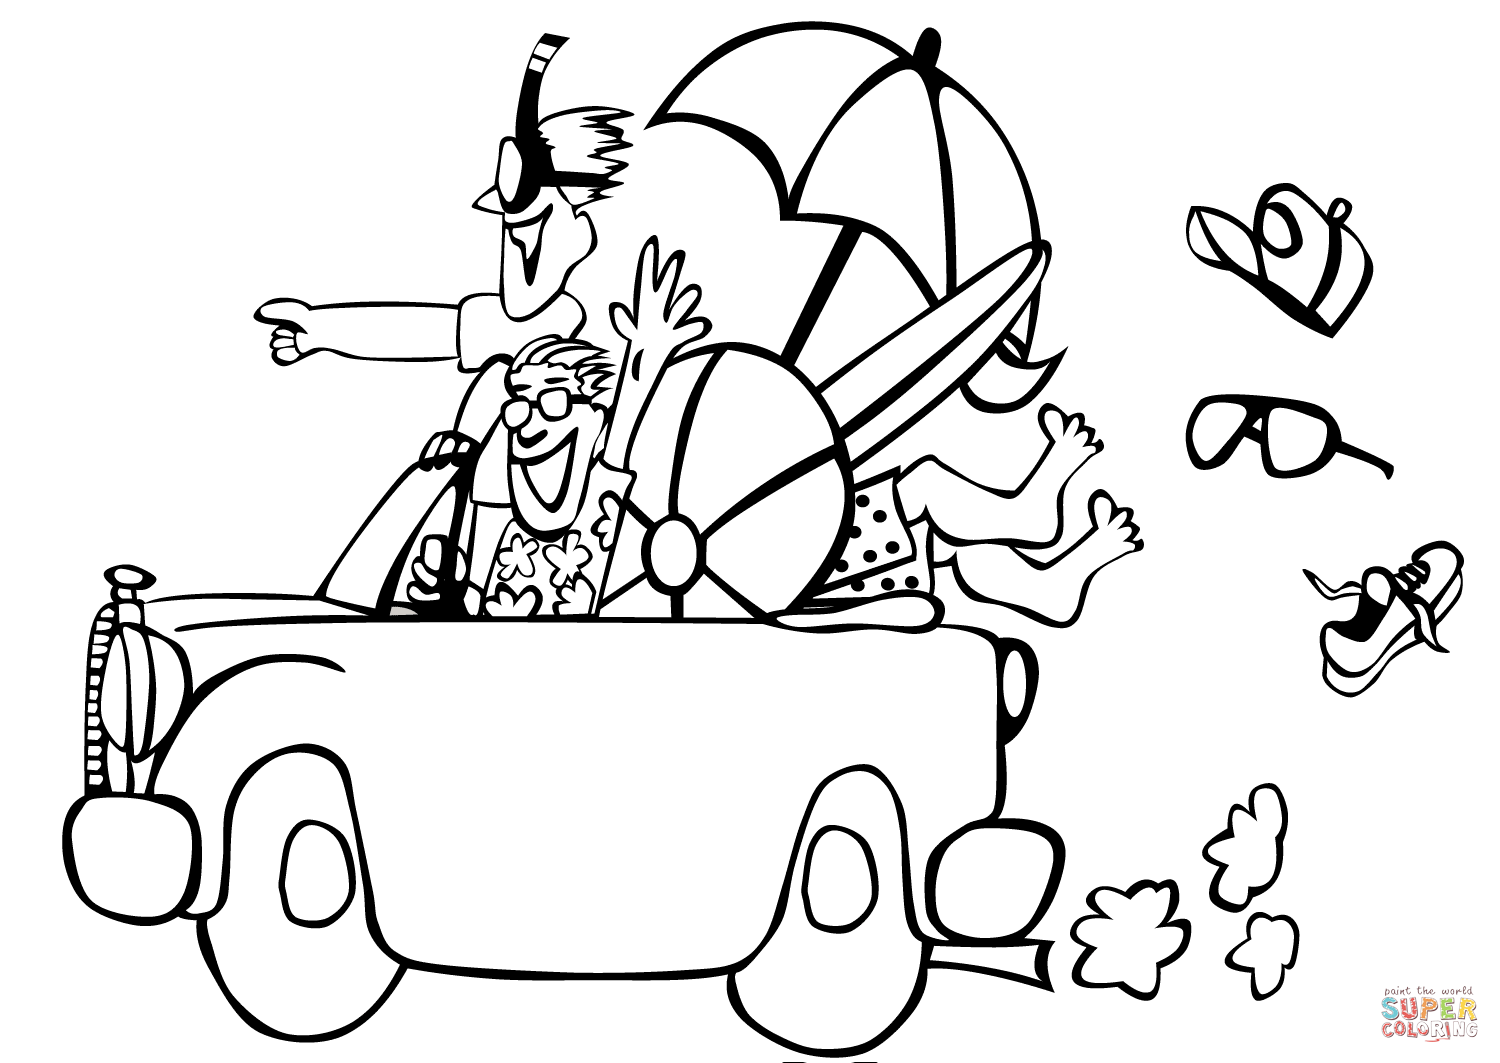 Go To The Beach Coloring Page